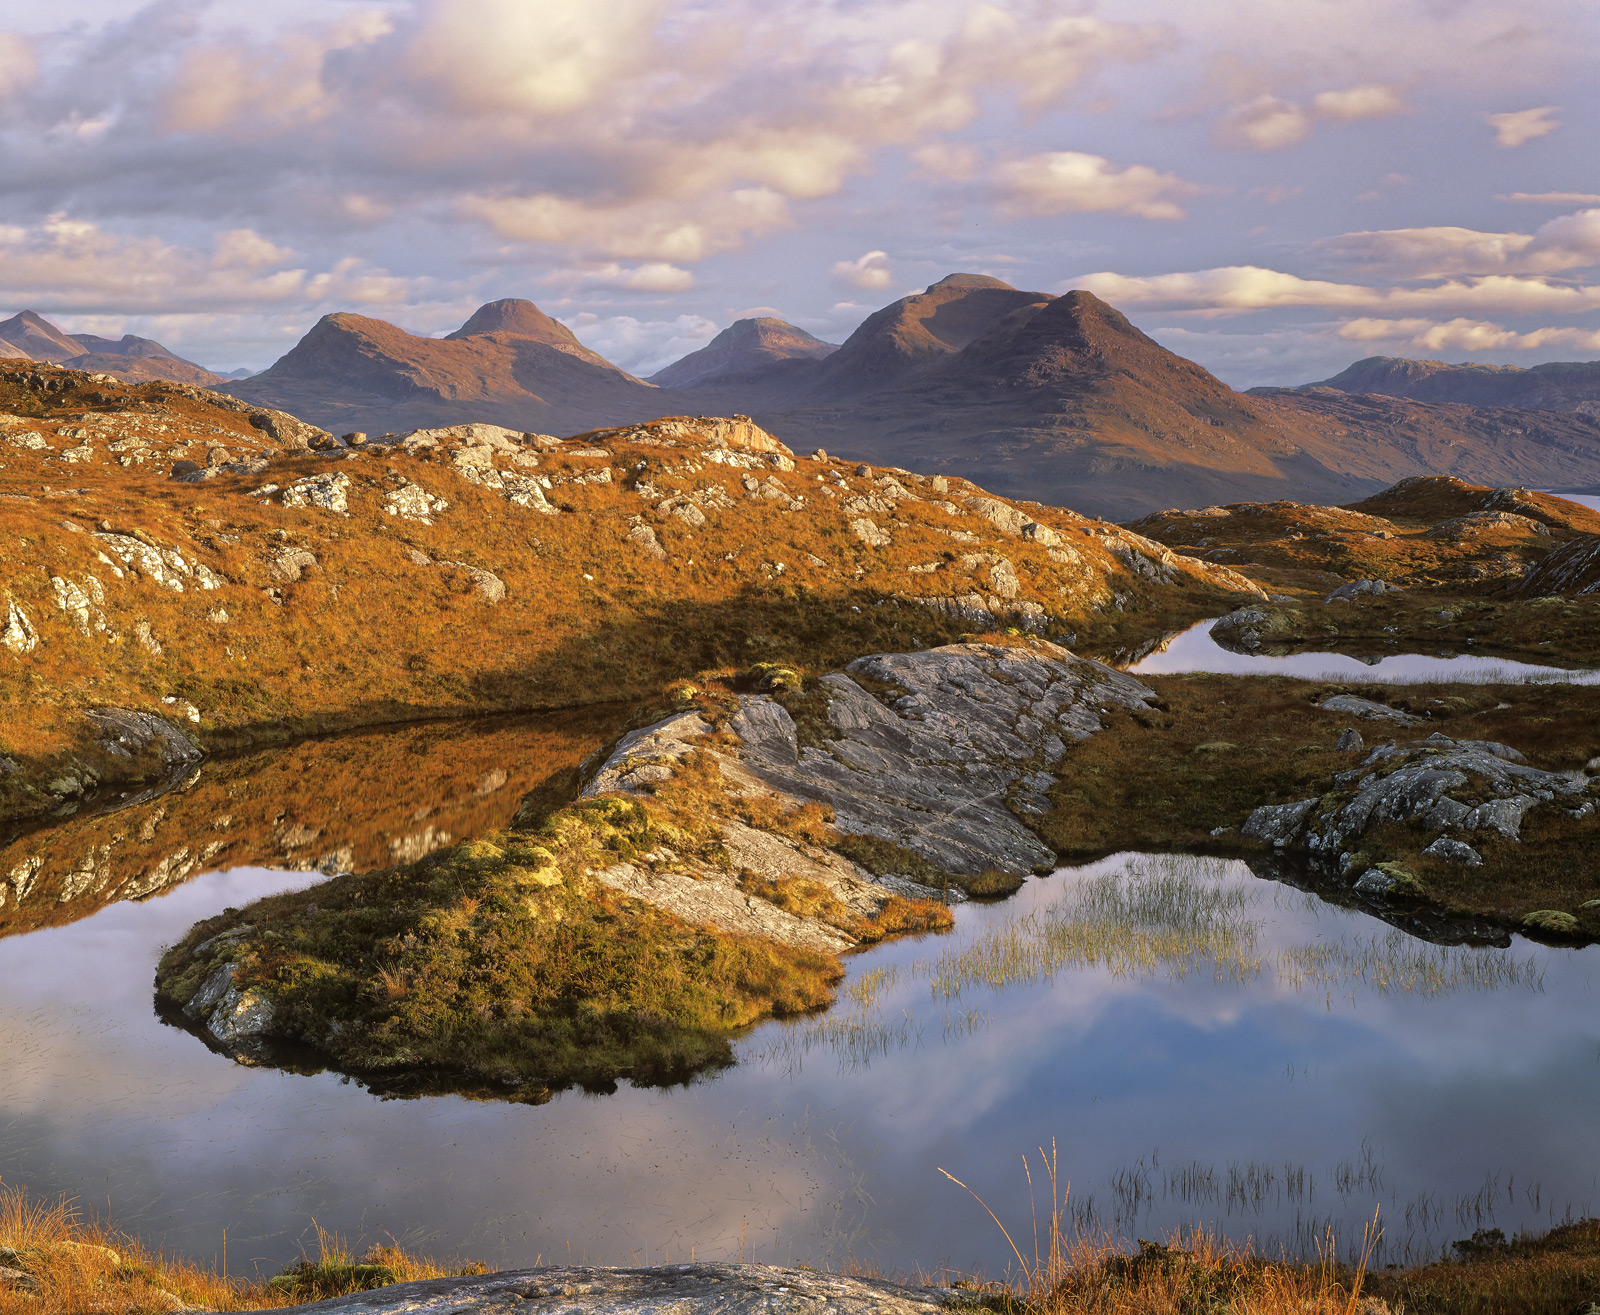 Torridon Massif, Diabaig, Torridon, Scotland, lochan, tongue, heather, bracken, sunset, cloud, light, shade, warmer, bea, photo